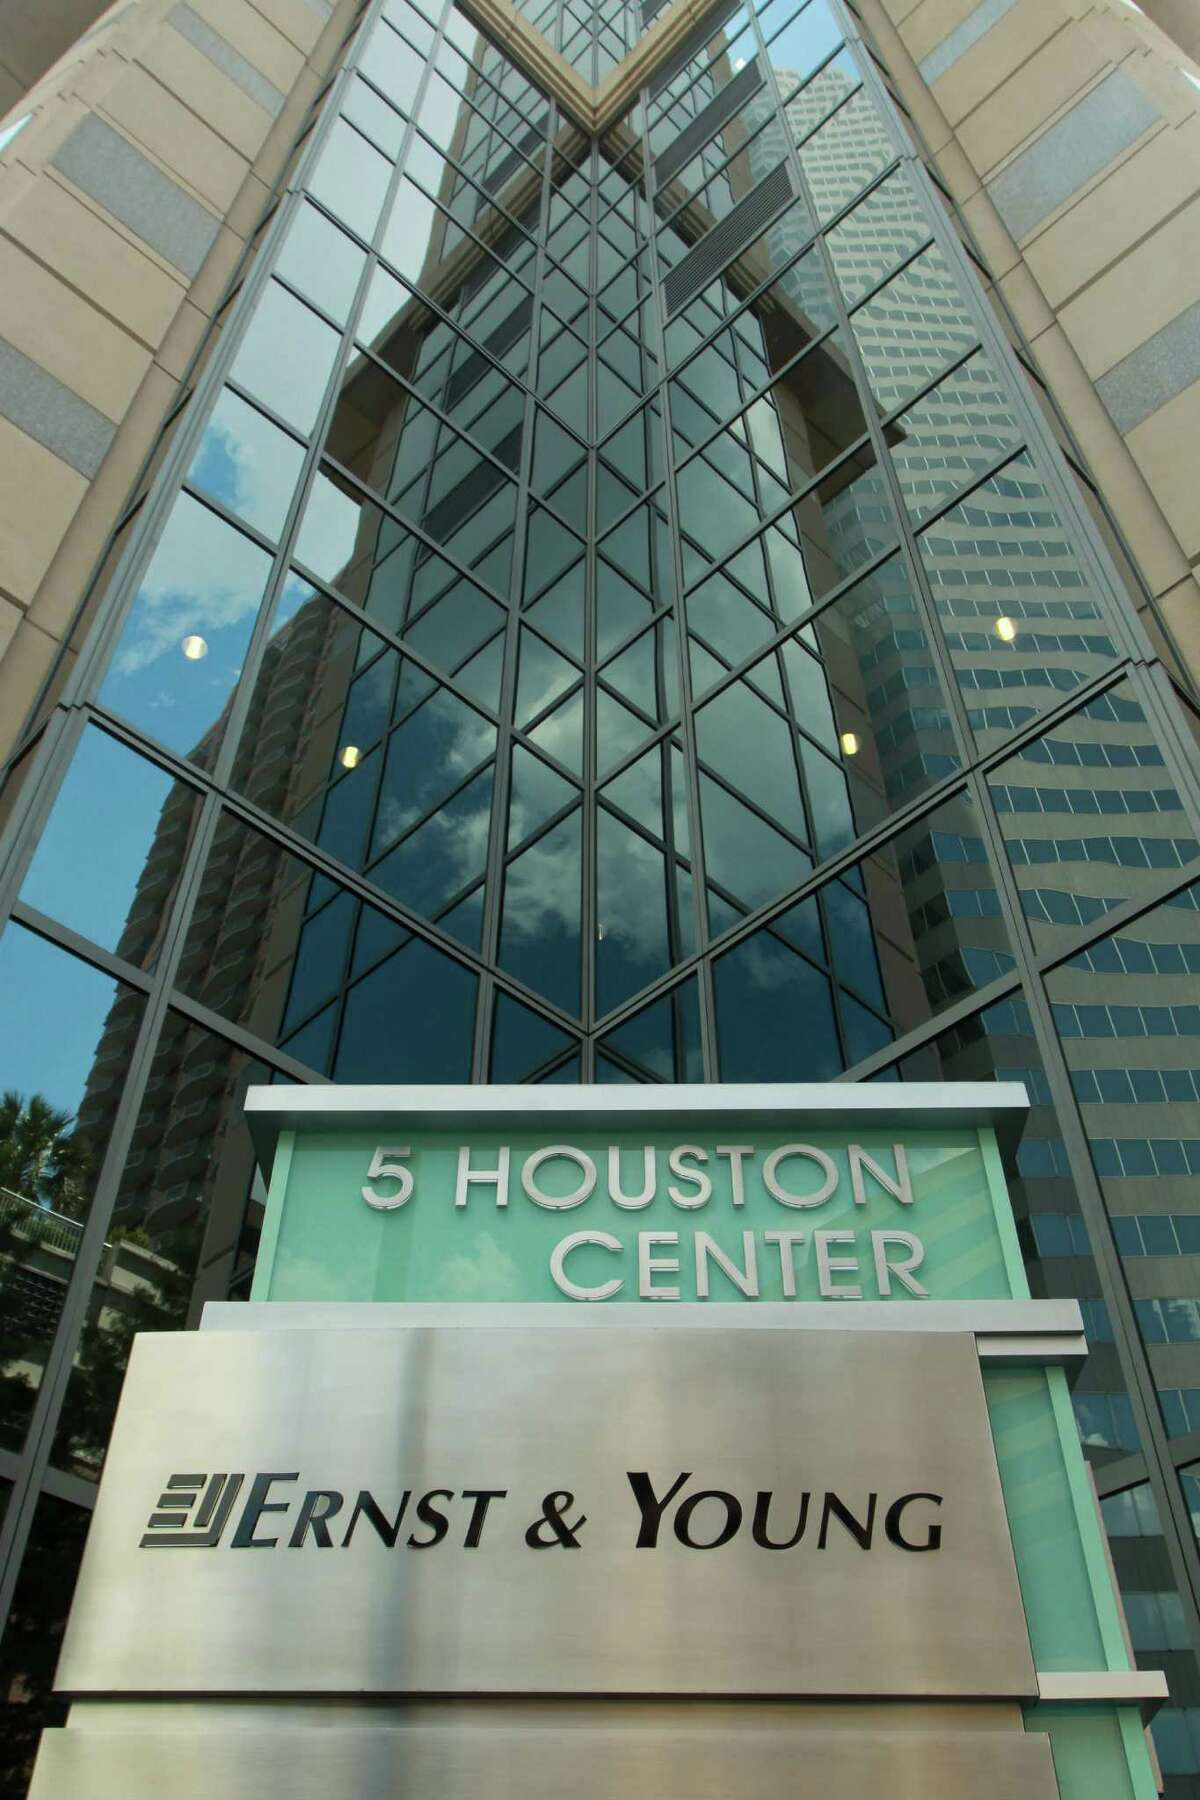 5 Houston Center, a 581,000-square-foot office building with 27 stories at 1401 McKinney.